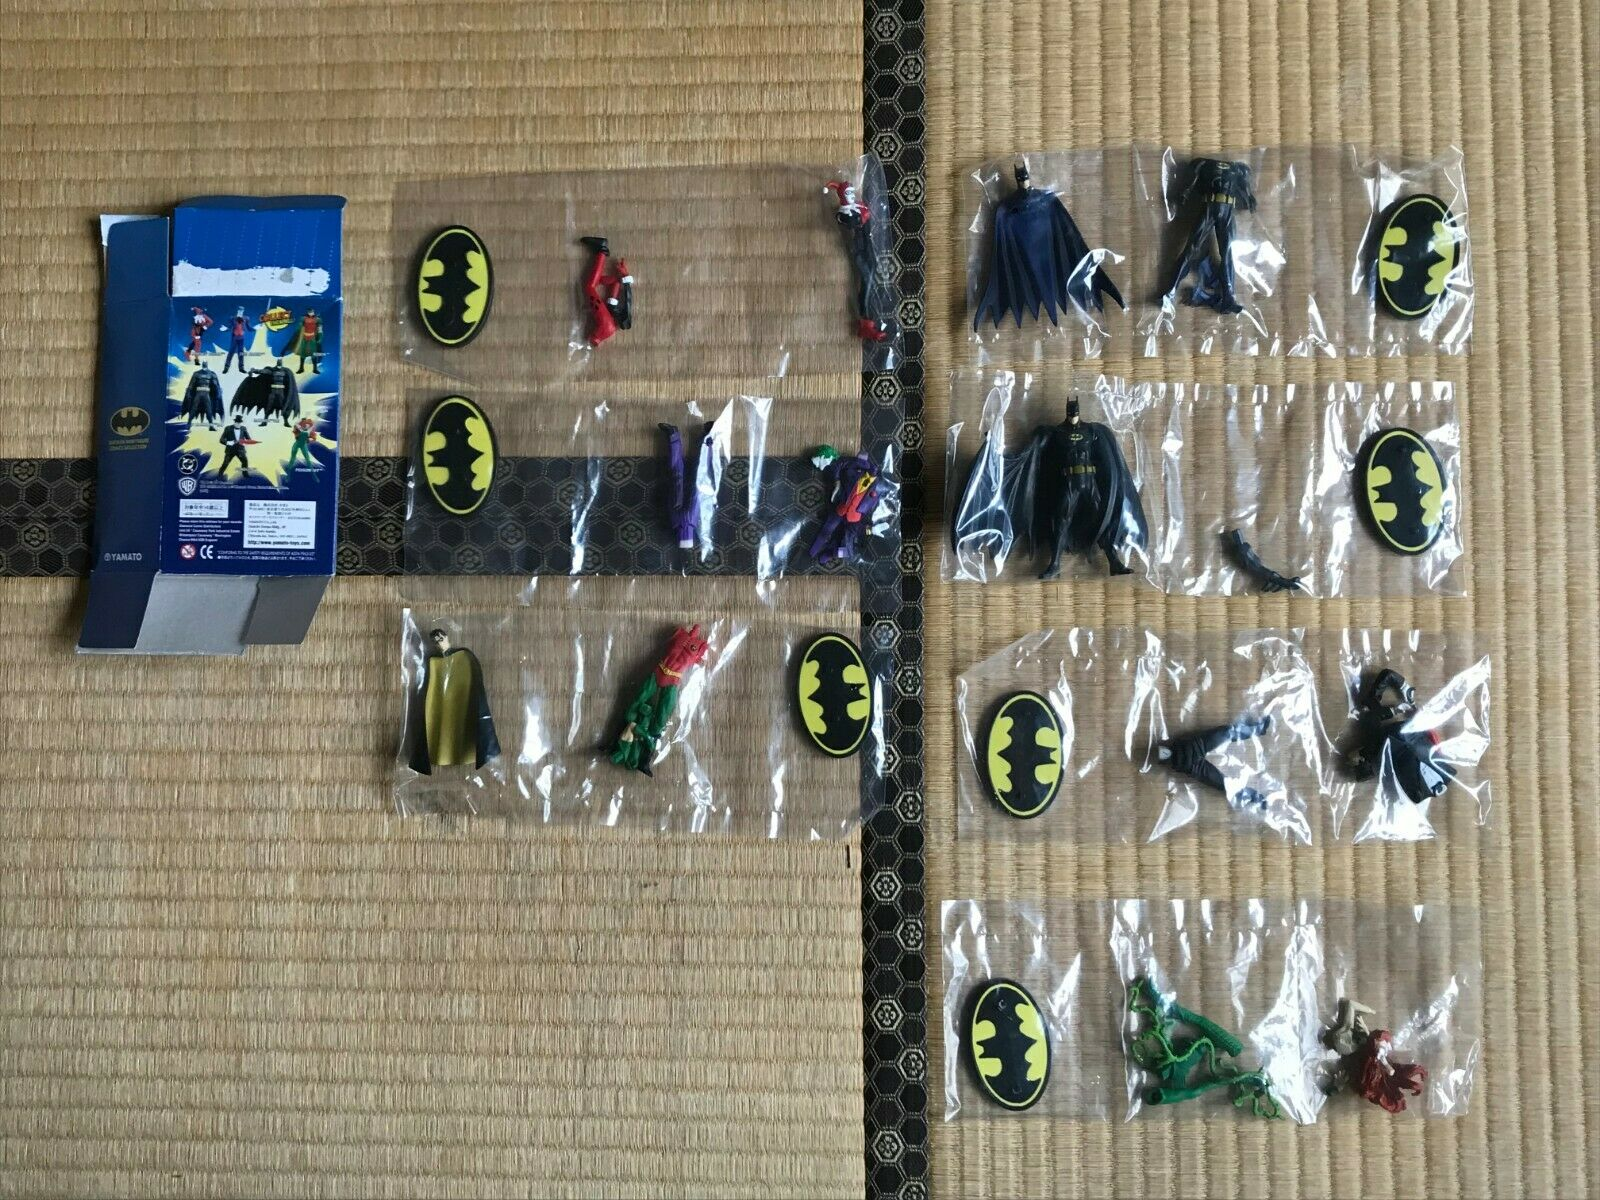 ⑤Yamato,BATMAN Mini Figure Comics Selection, All 7 Figures Complete Set